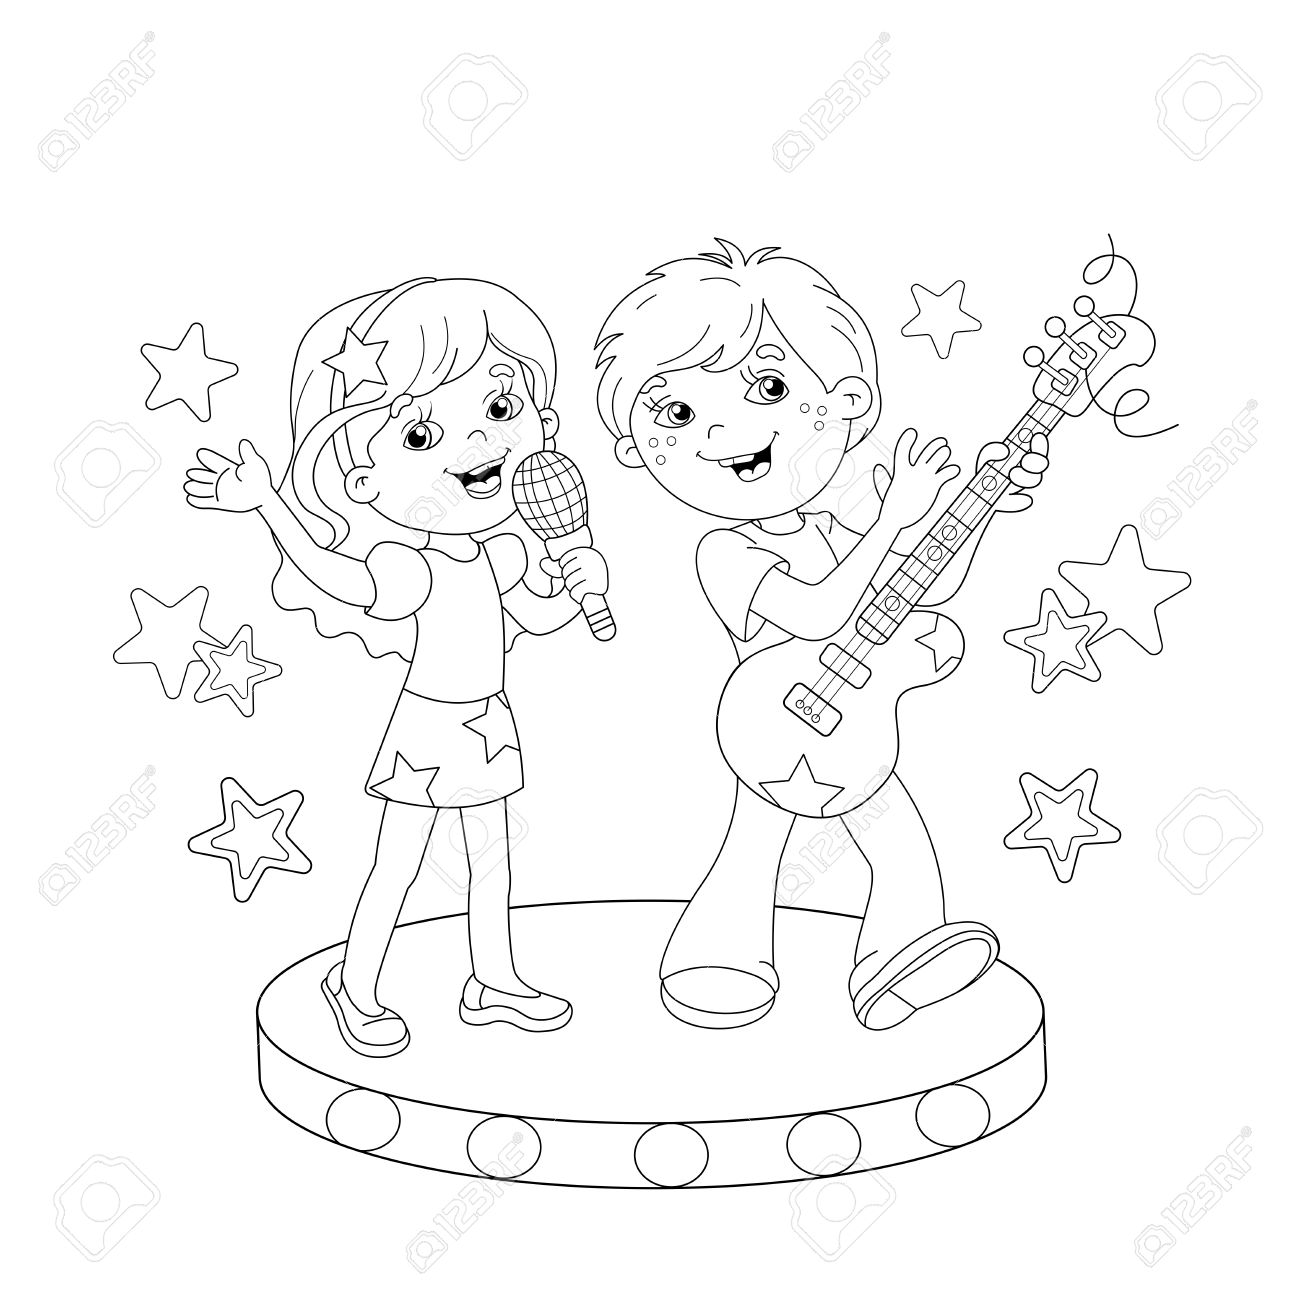 Coloring page outline of cartoon boy and girl singing a song with a guitar on stage